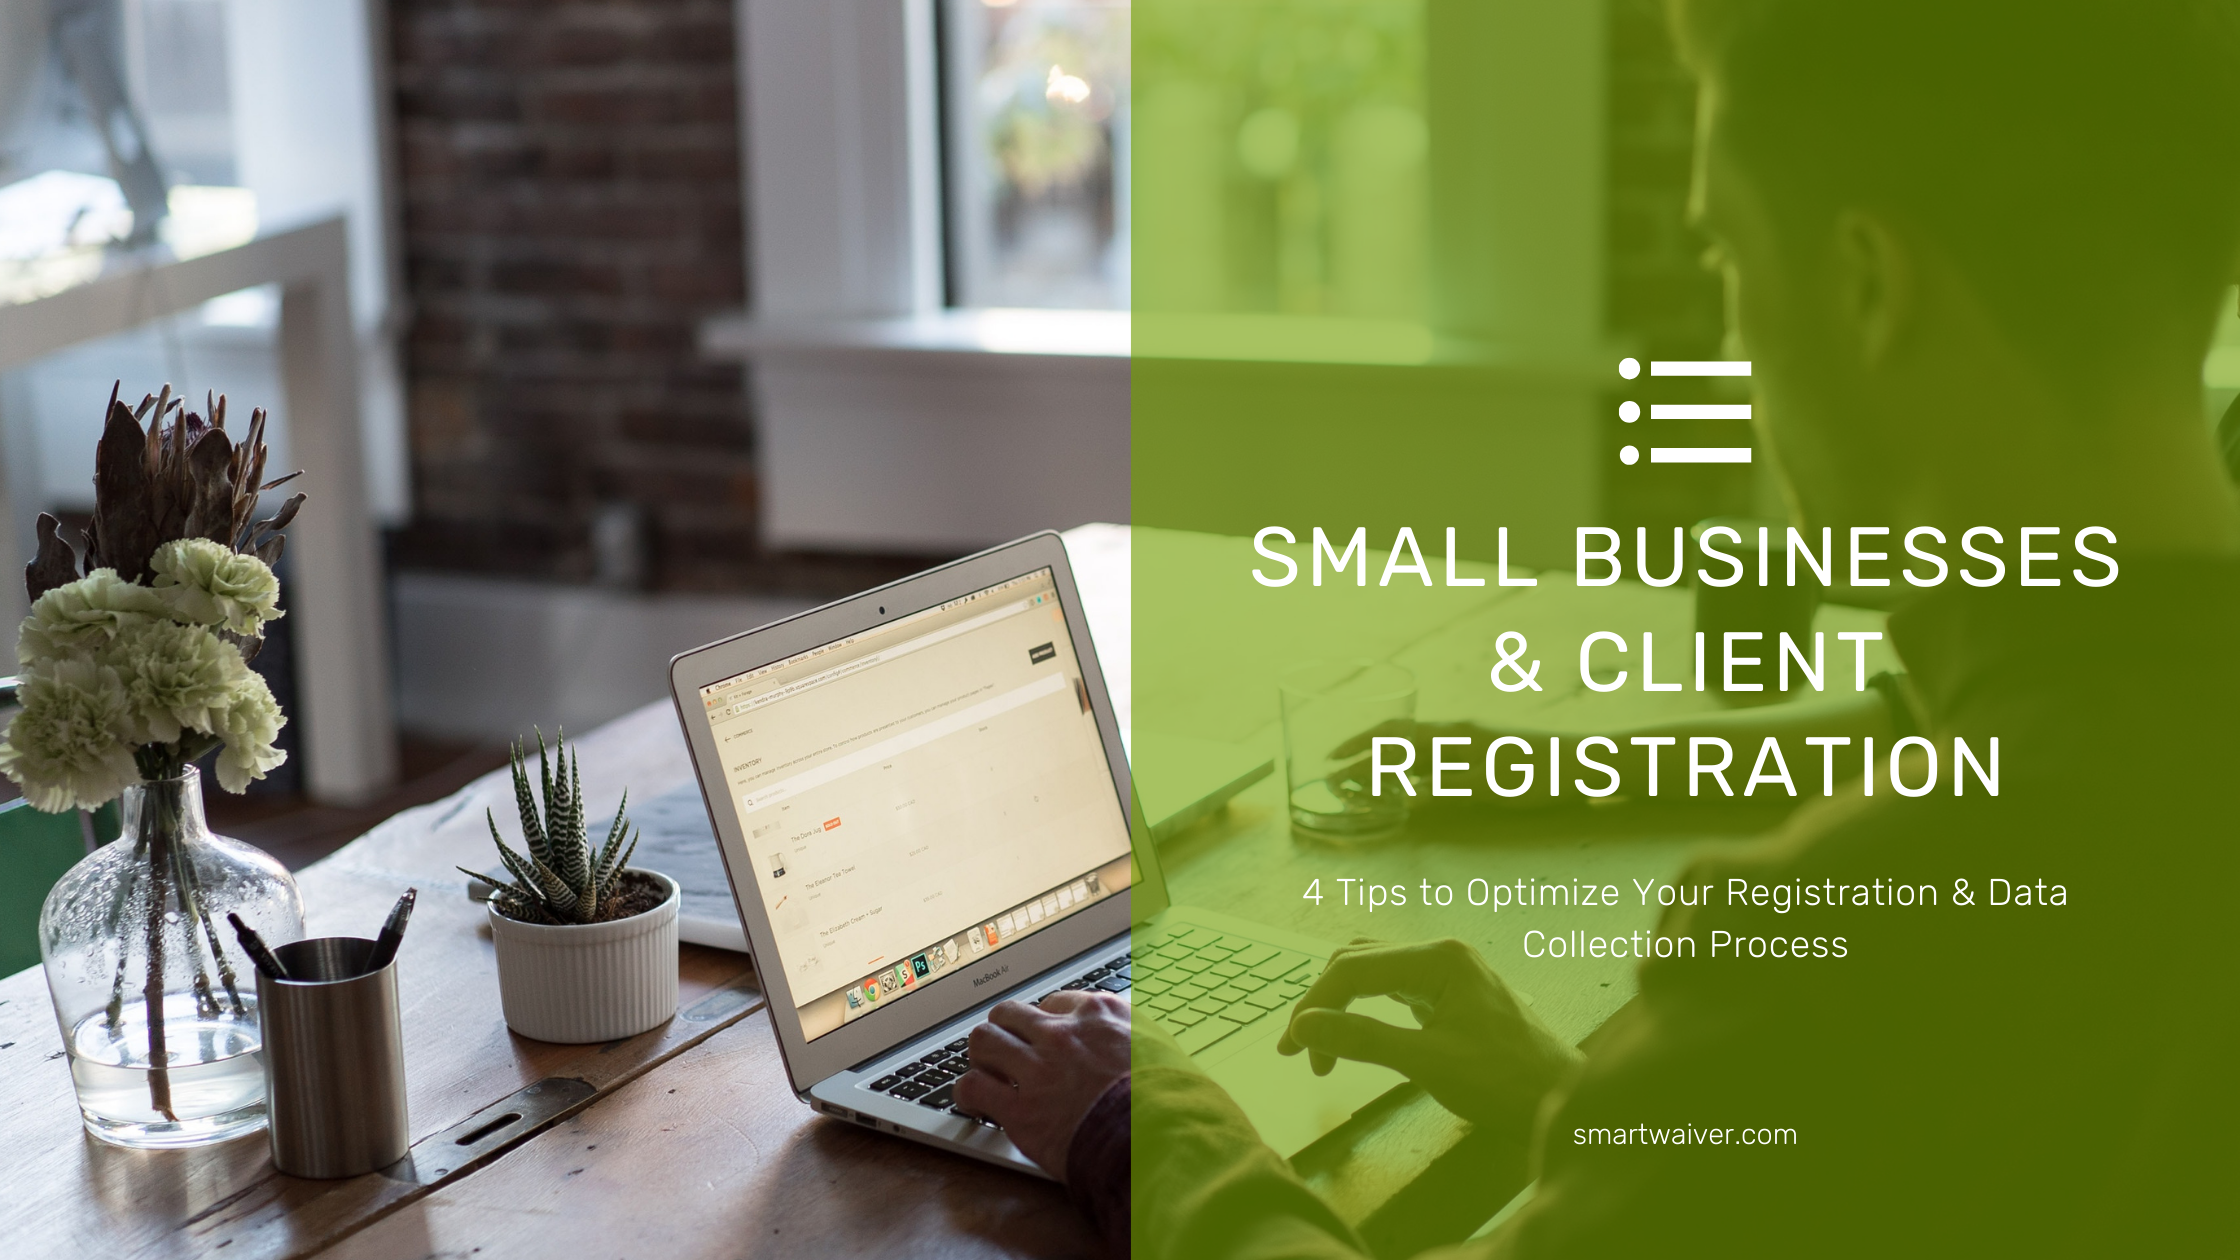 Small Businesses & Client Registration